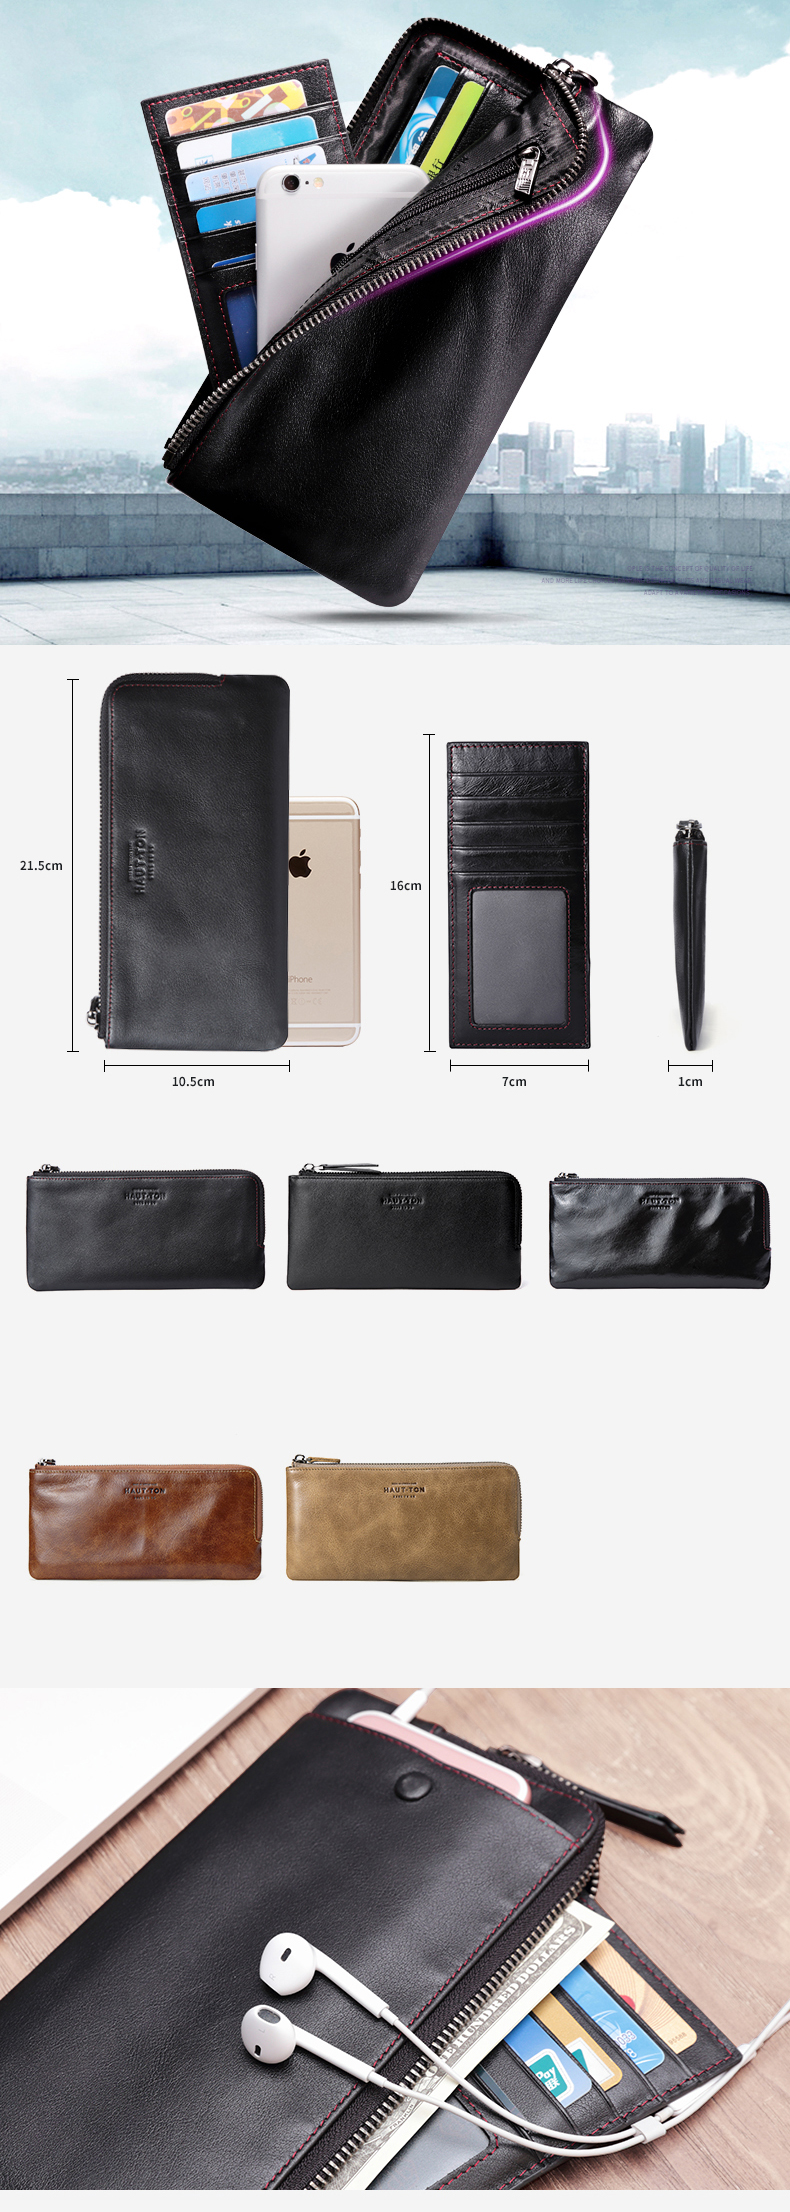 Genuine leather business men slim credit card carrying bag coin purse cell phone case wallet with zipper